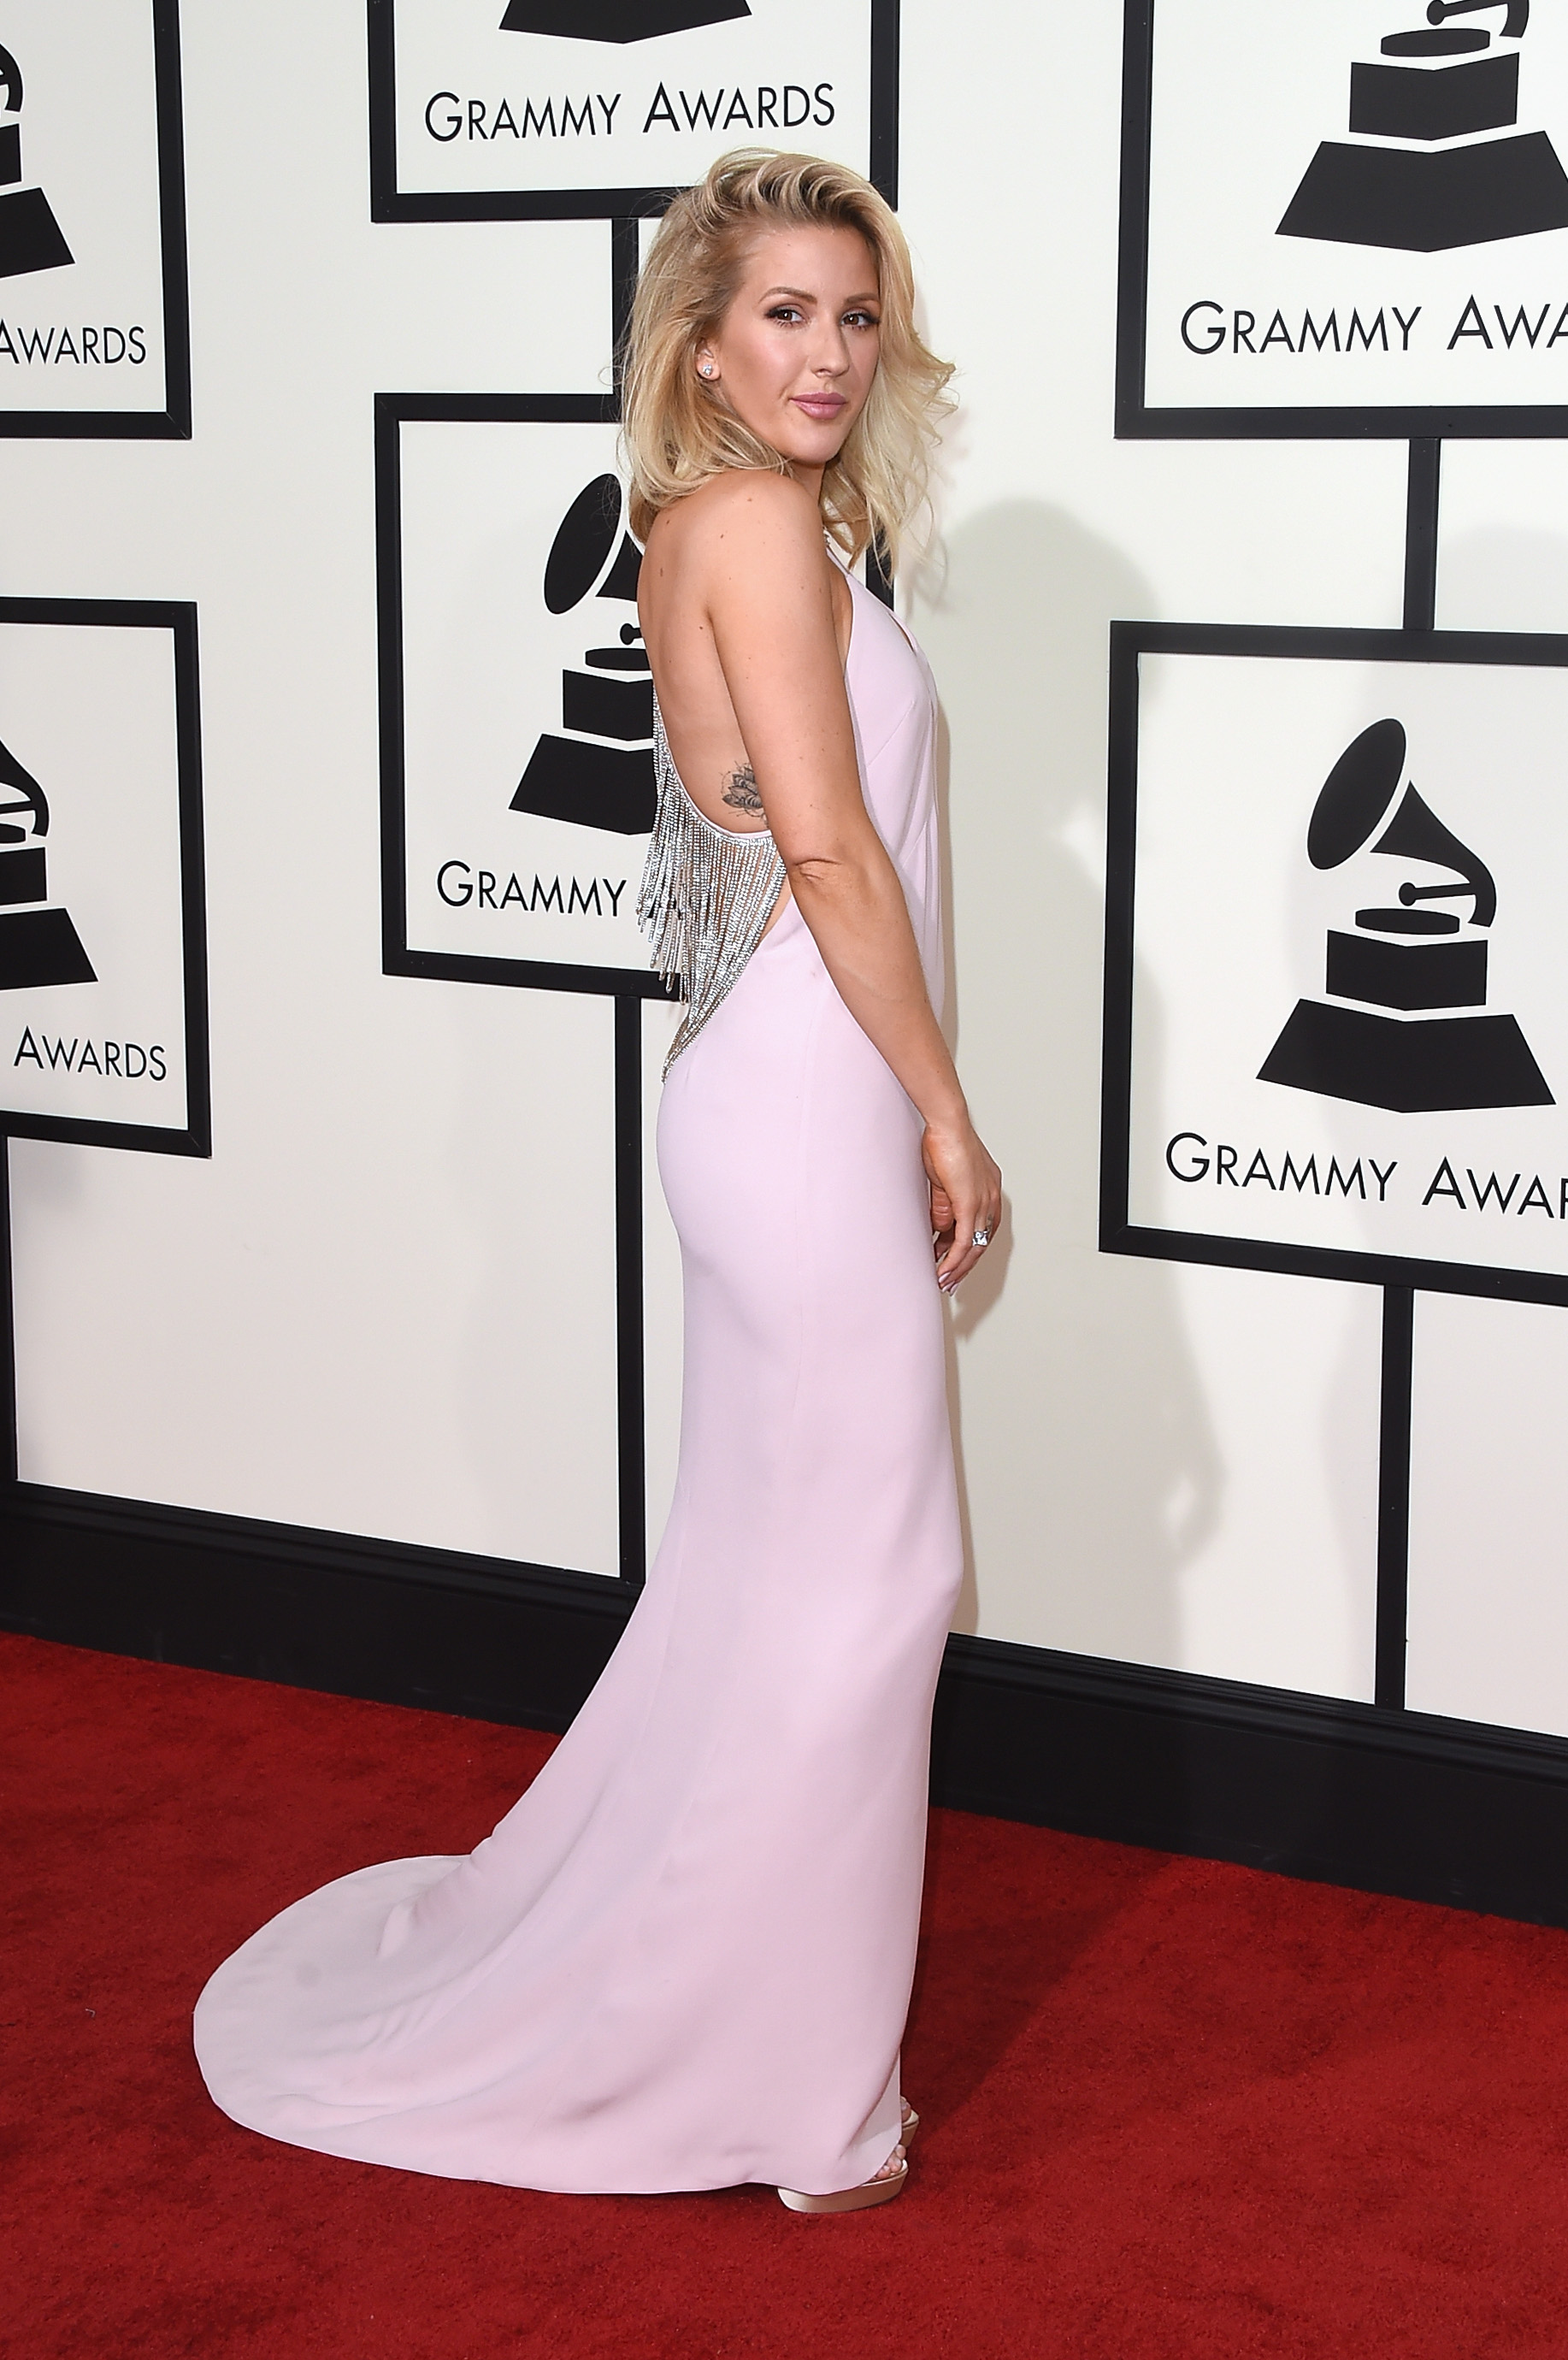 Ellie Goulding attends the 58th GRAMMY Awards at Staples Center on Feb. 15, 2016 in Los Angeles.